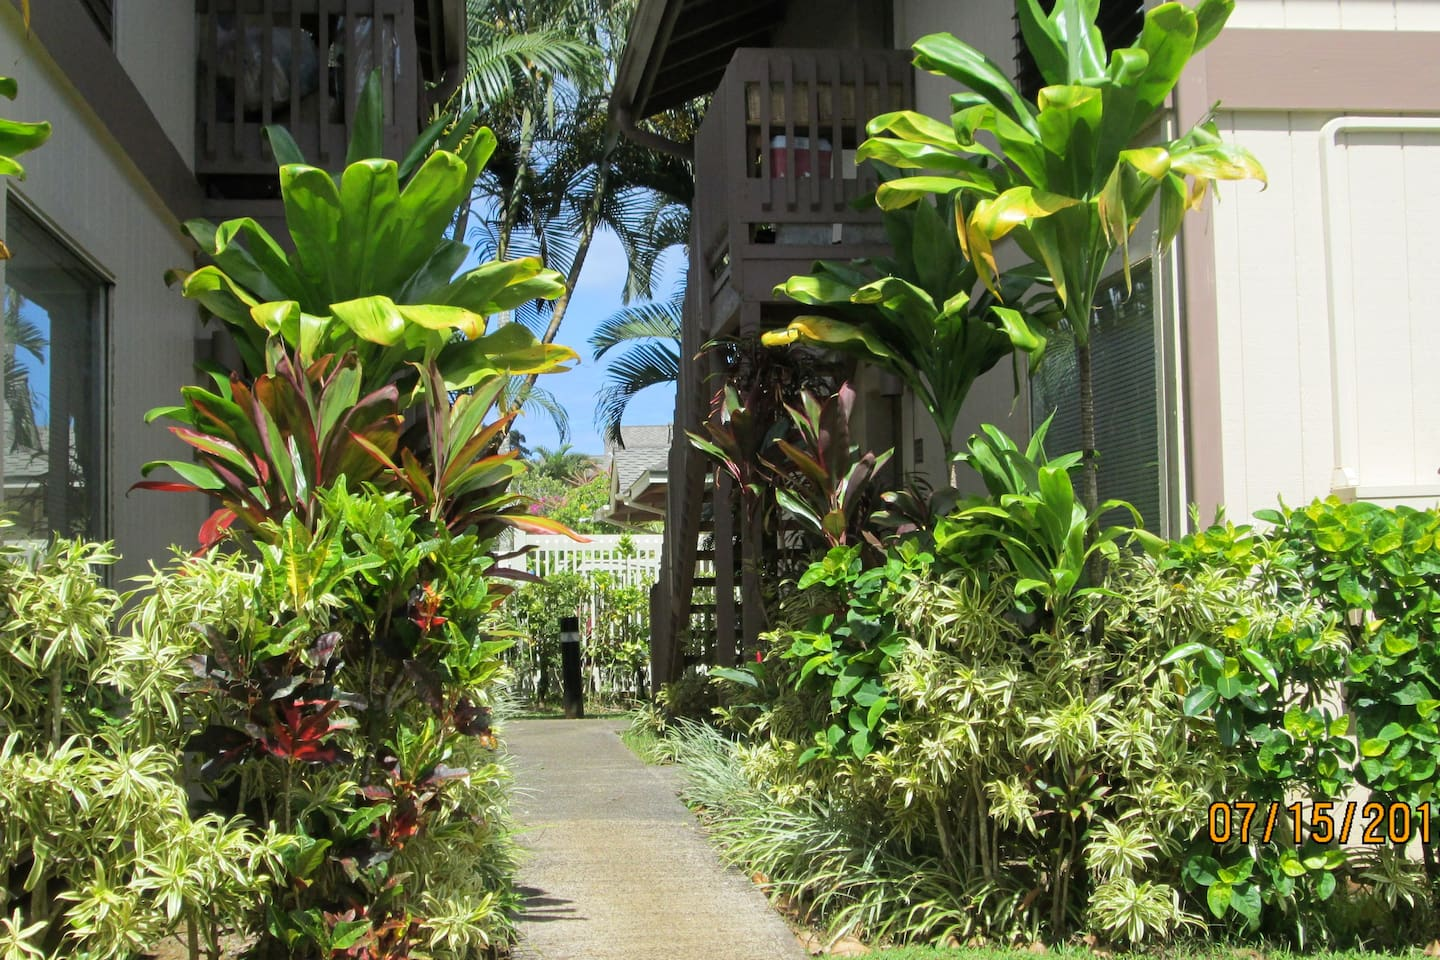 The path that leads to your vacation home...